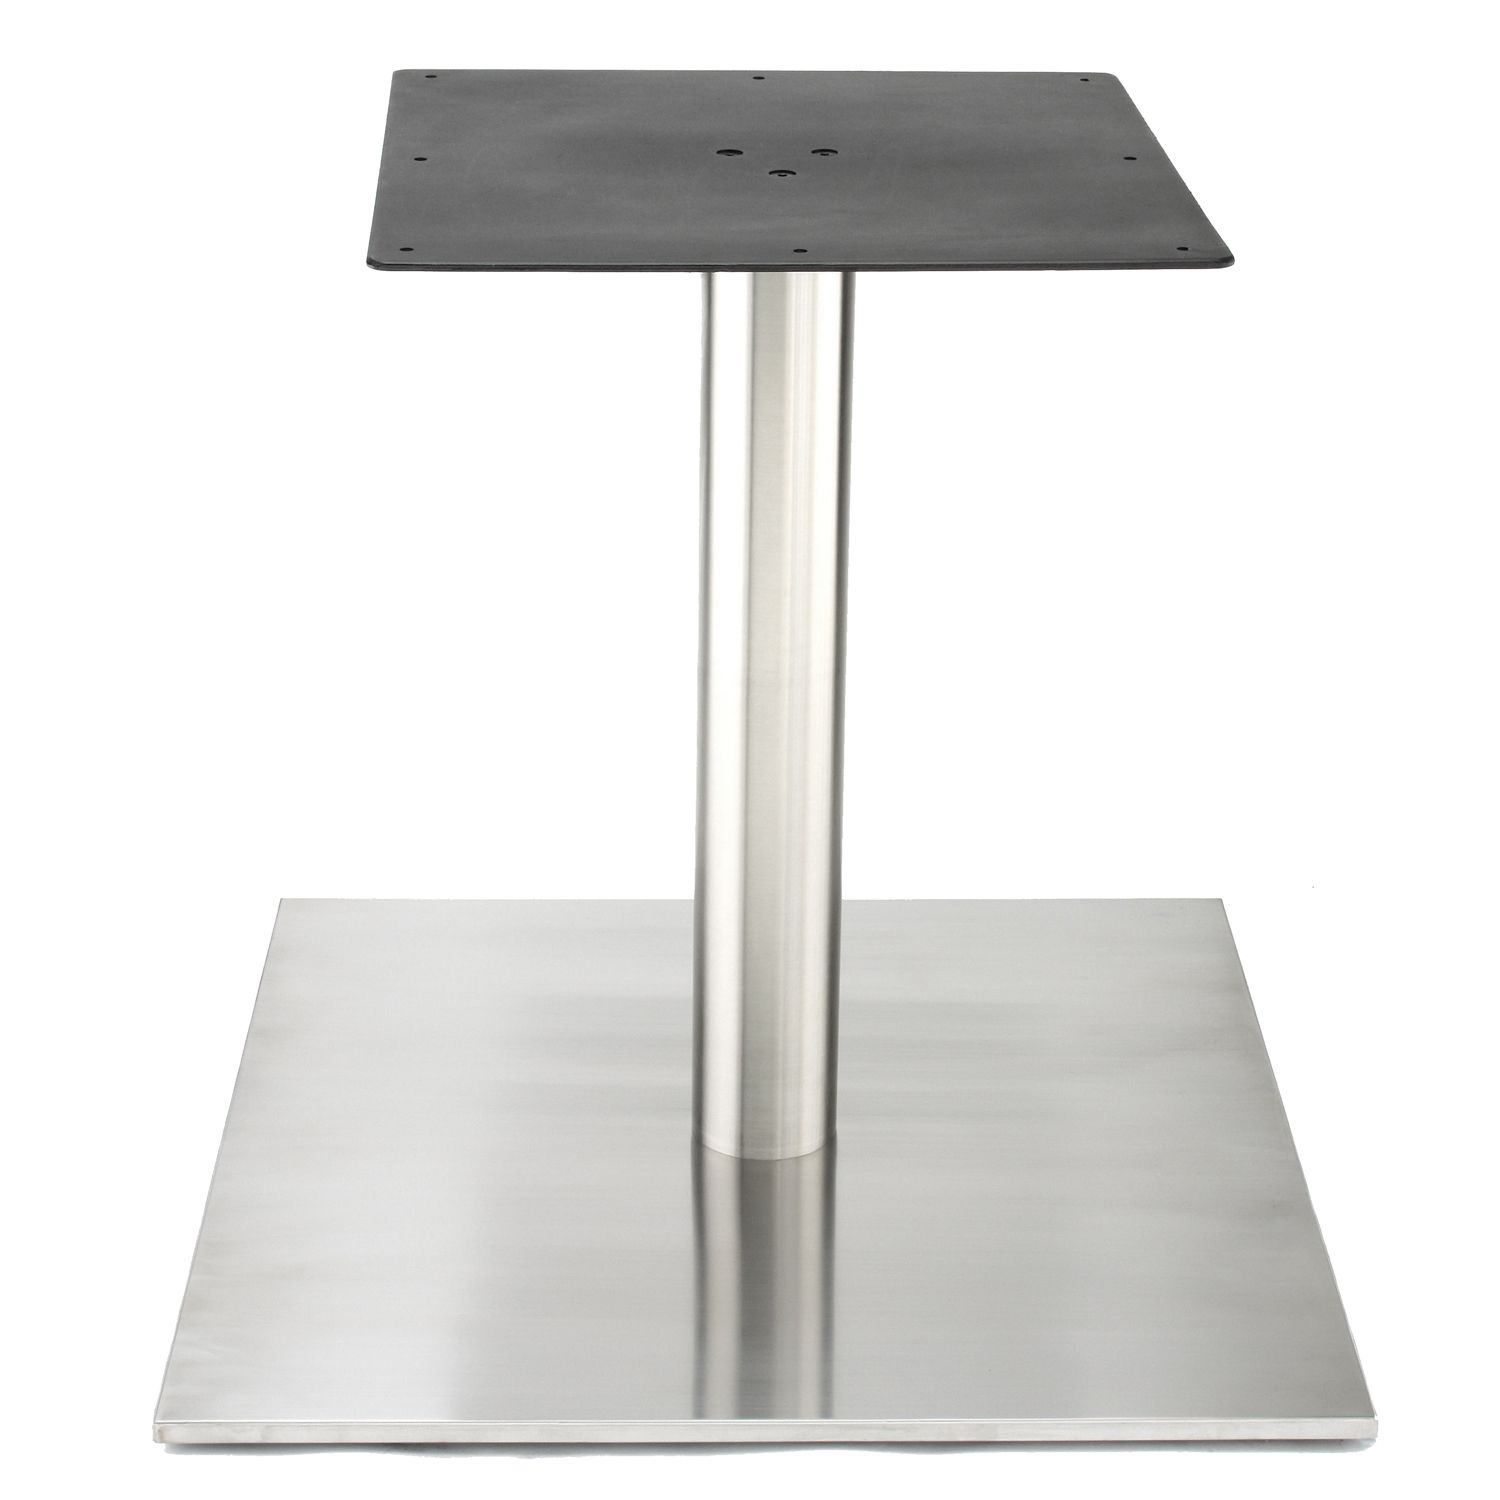 RSQ750 Stainless Steel Table Base